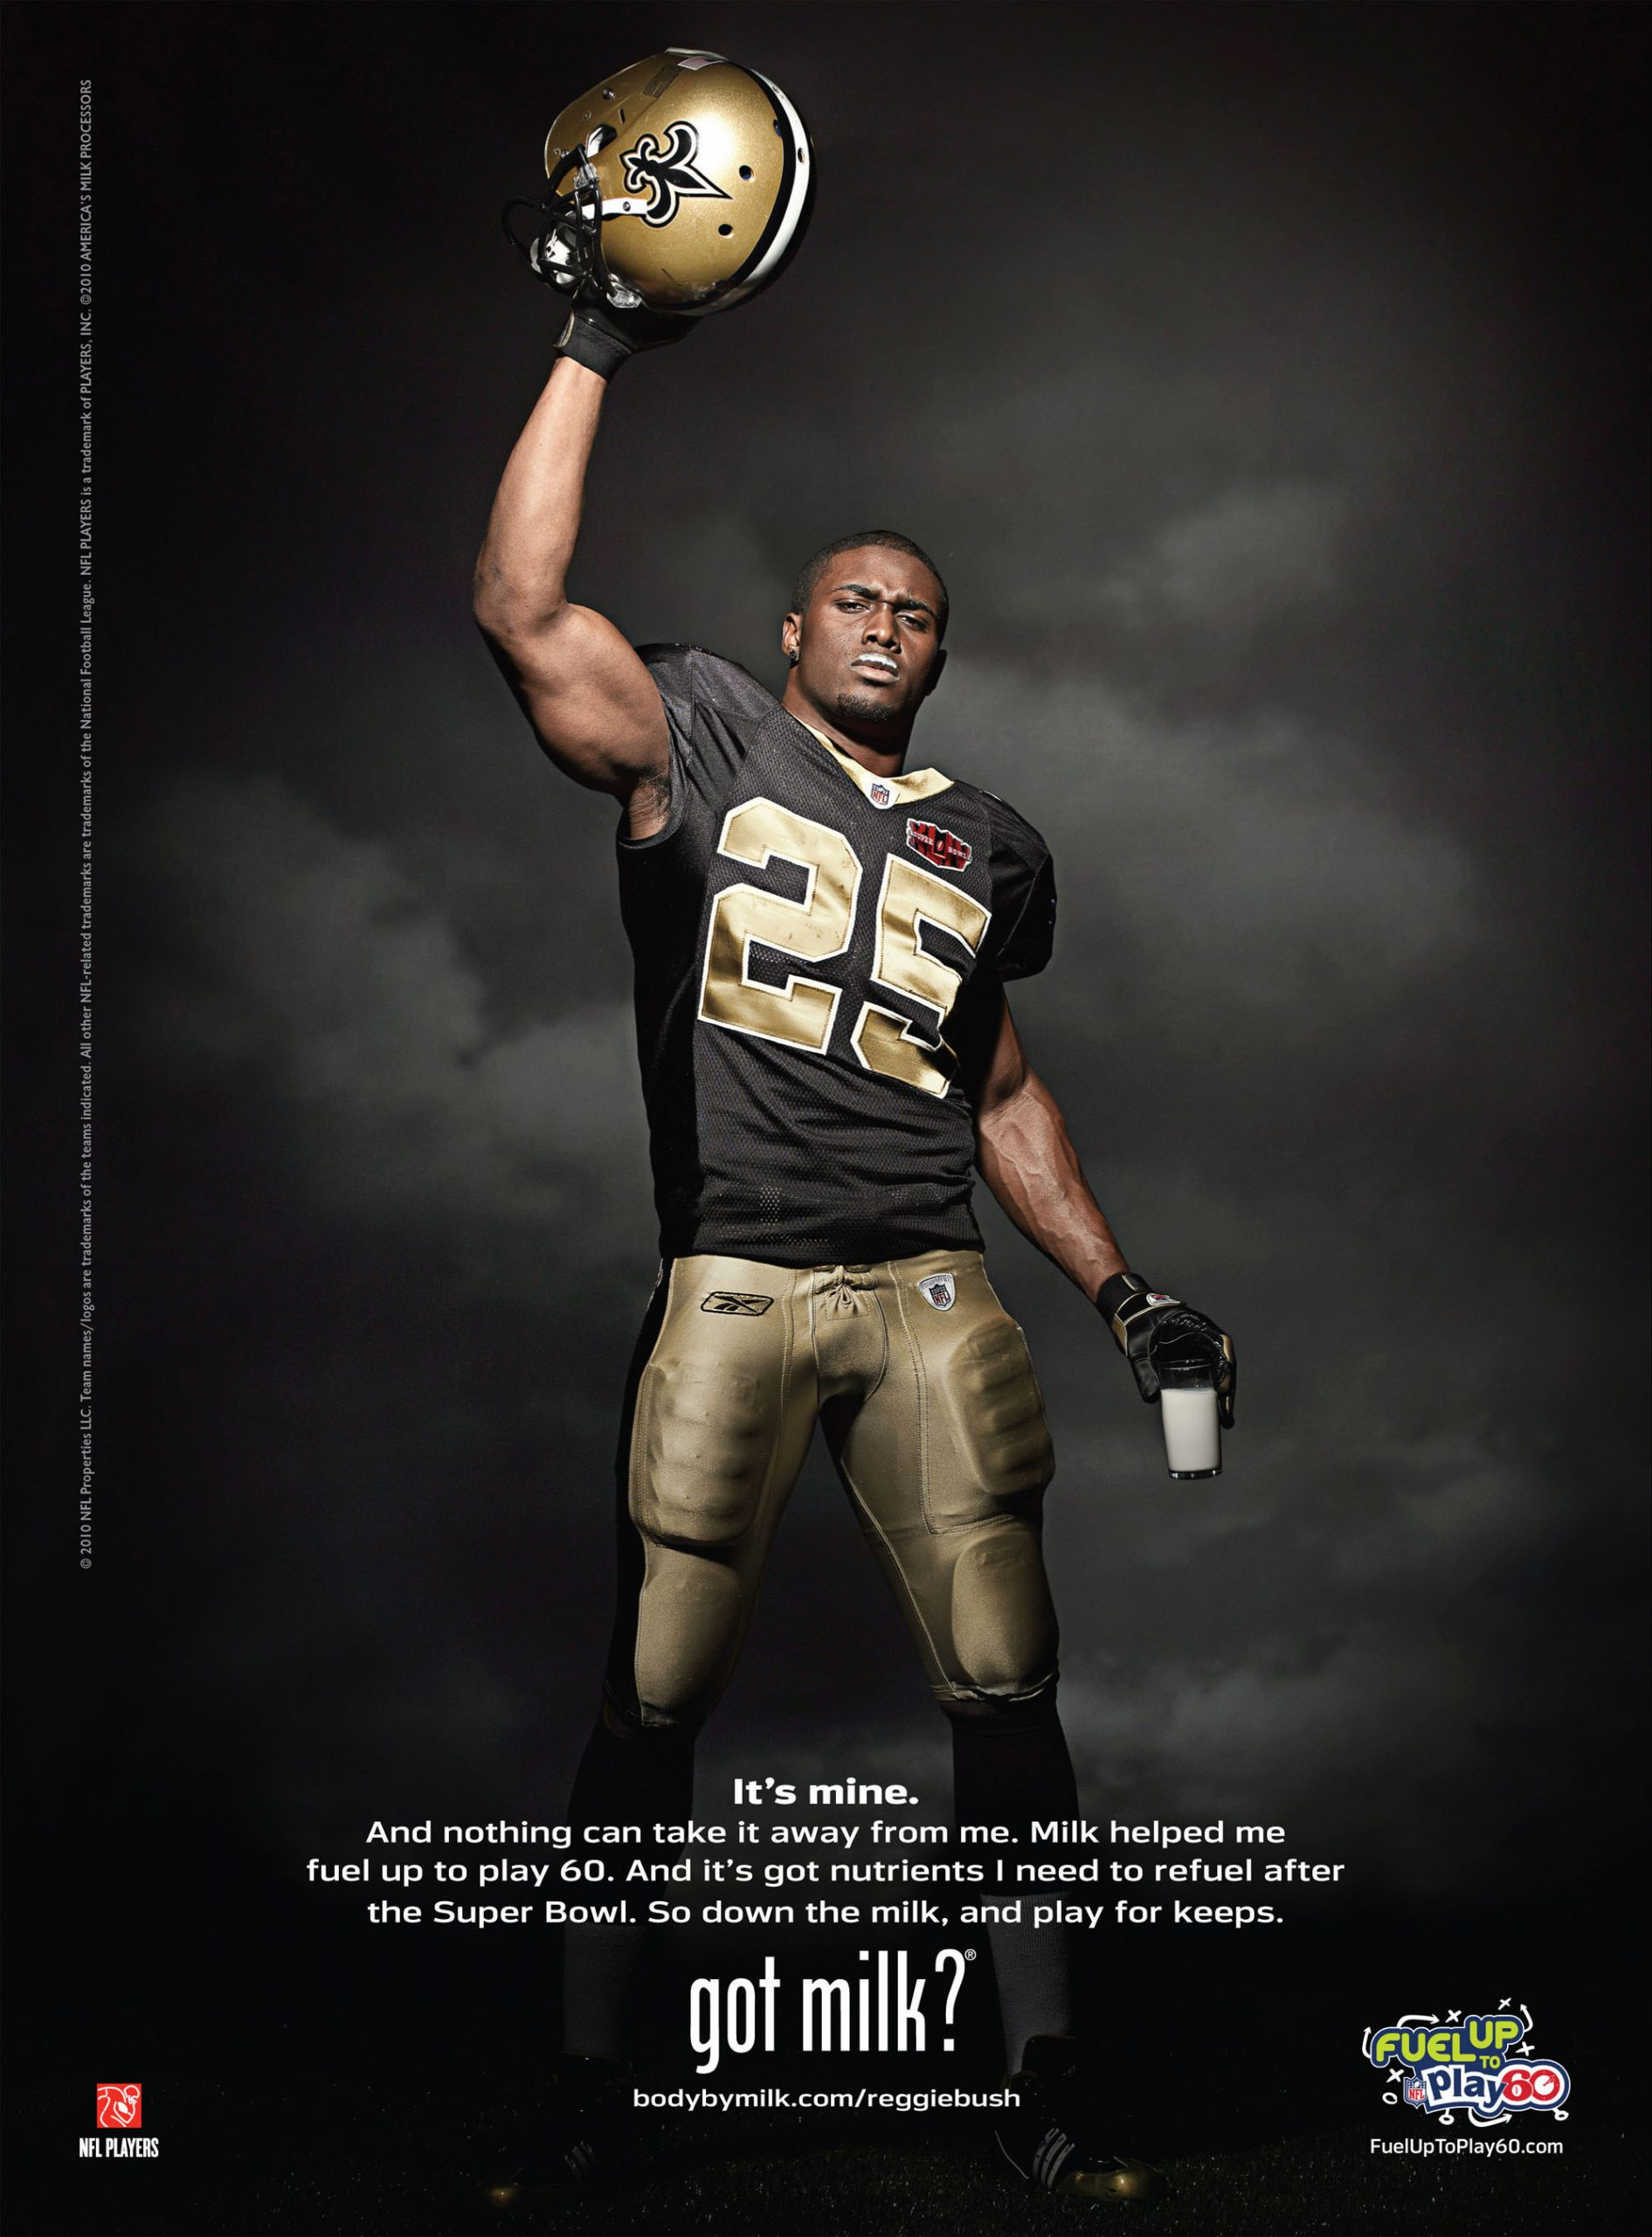 Reggie Bush, who appears in the 13th annual winning football Milk Mustache ad, saw his college football achievements undone by alleged impropriety./PRFoto/PRNewwire